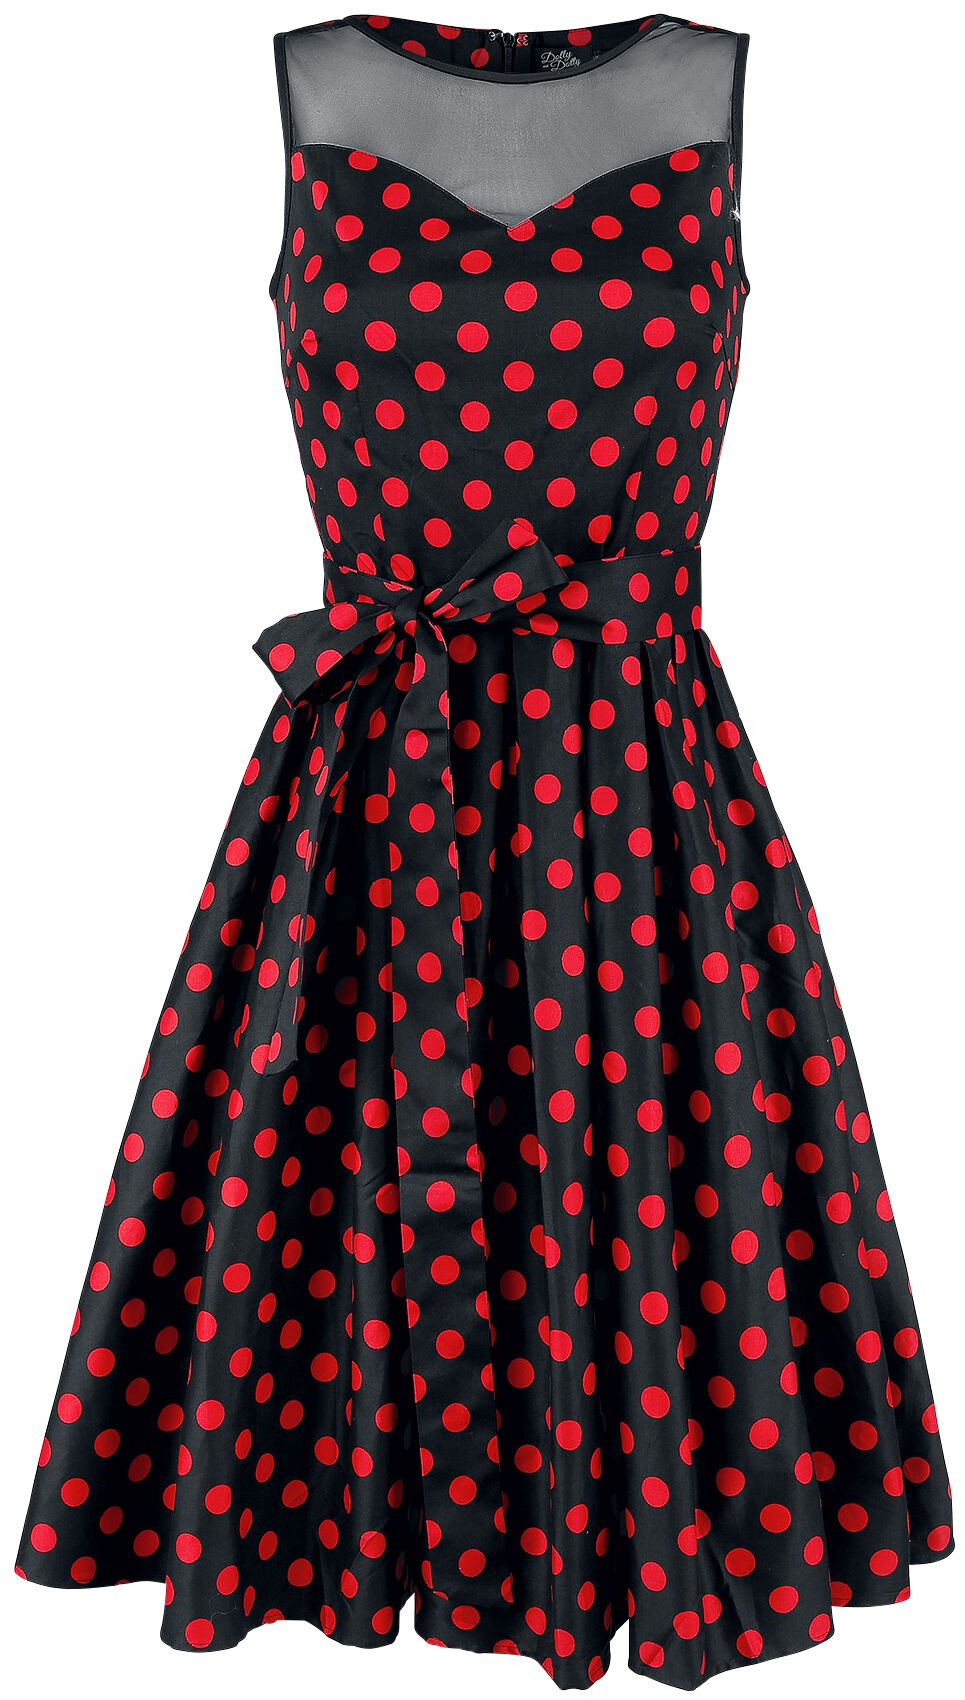 67a88923ff845d Kleider für Frauen - Dolly and Dotty Elizabeth Swing Dress Kleid schwarz rot  - Onlineshop EMP